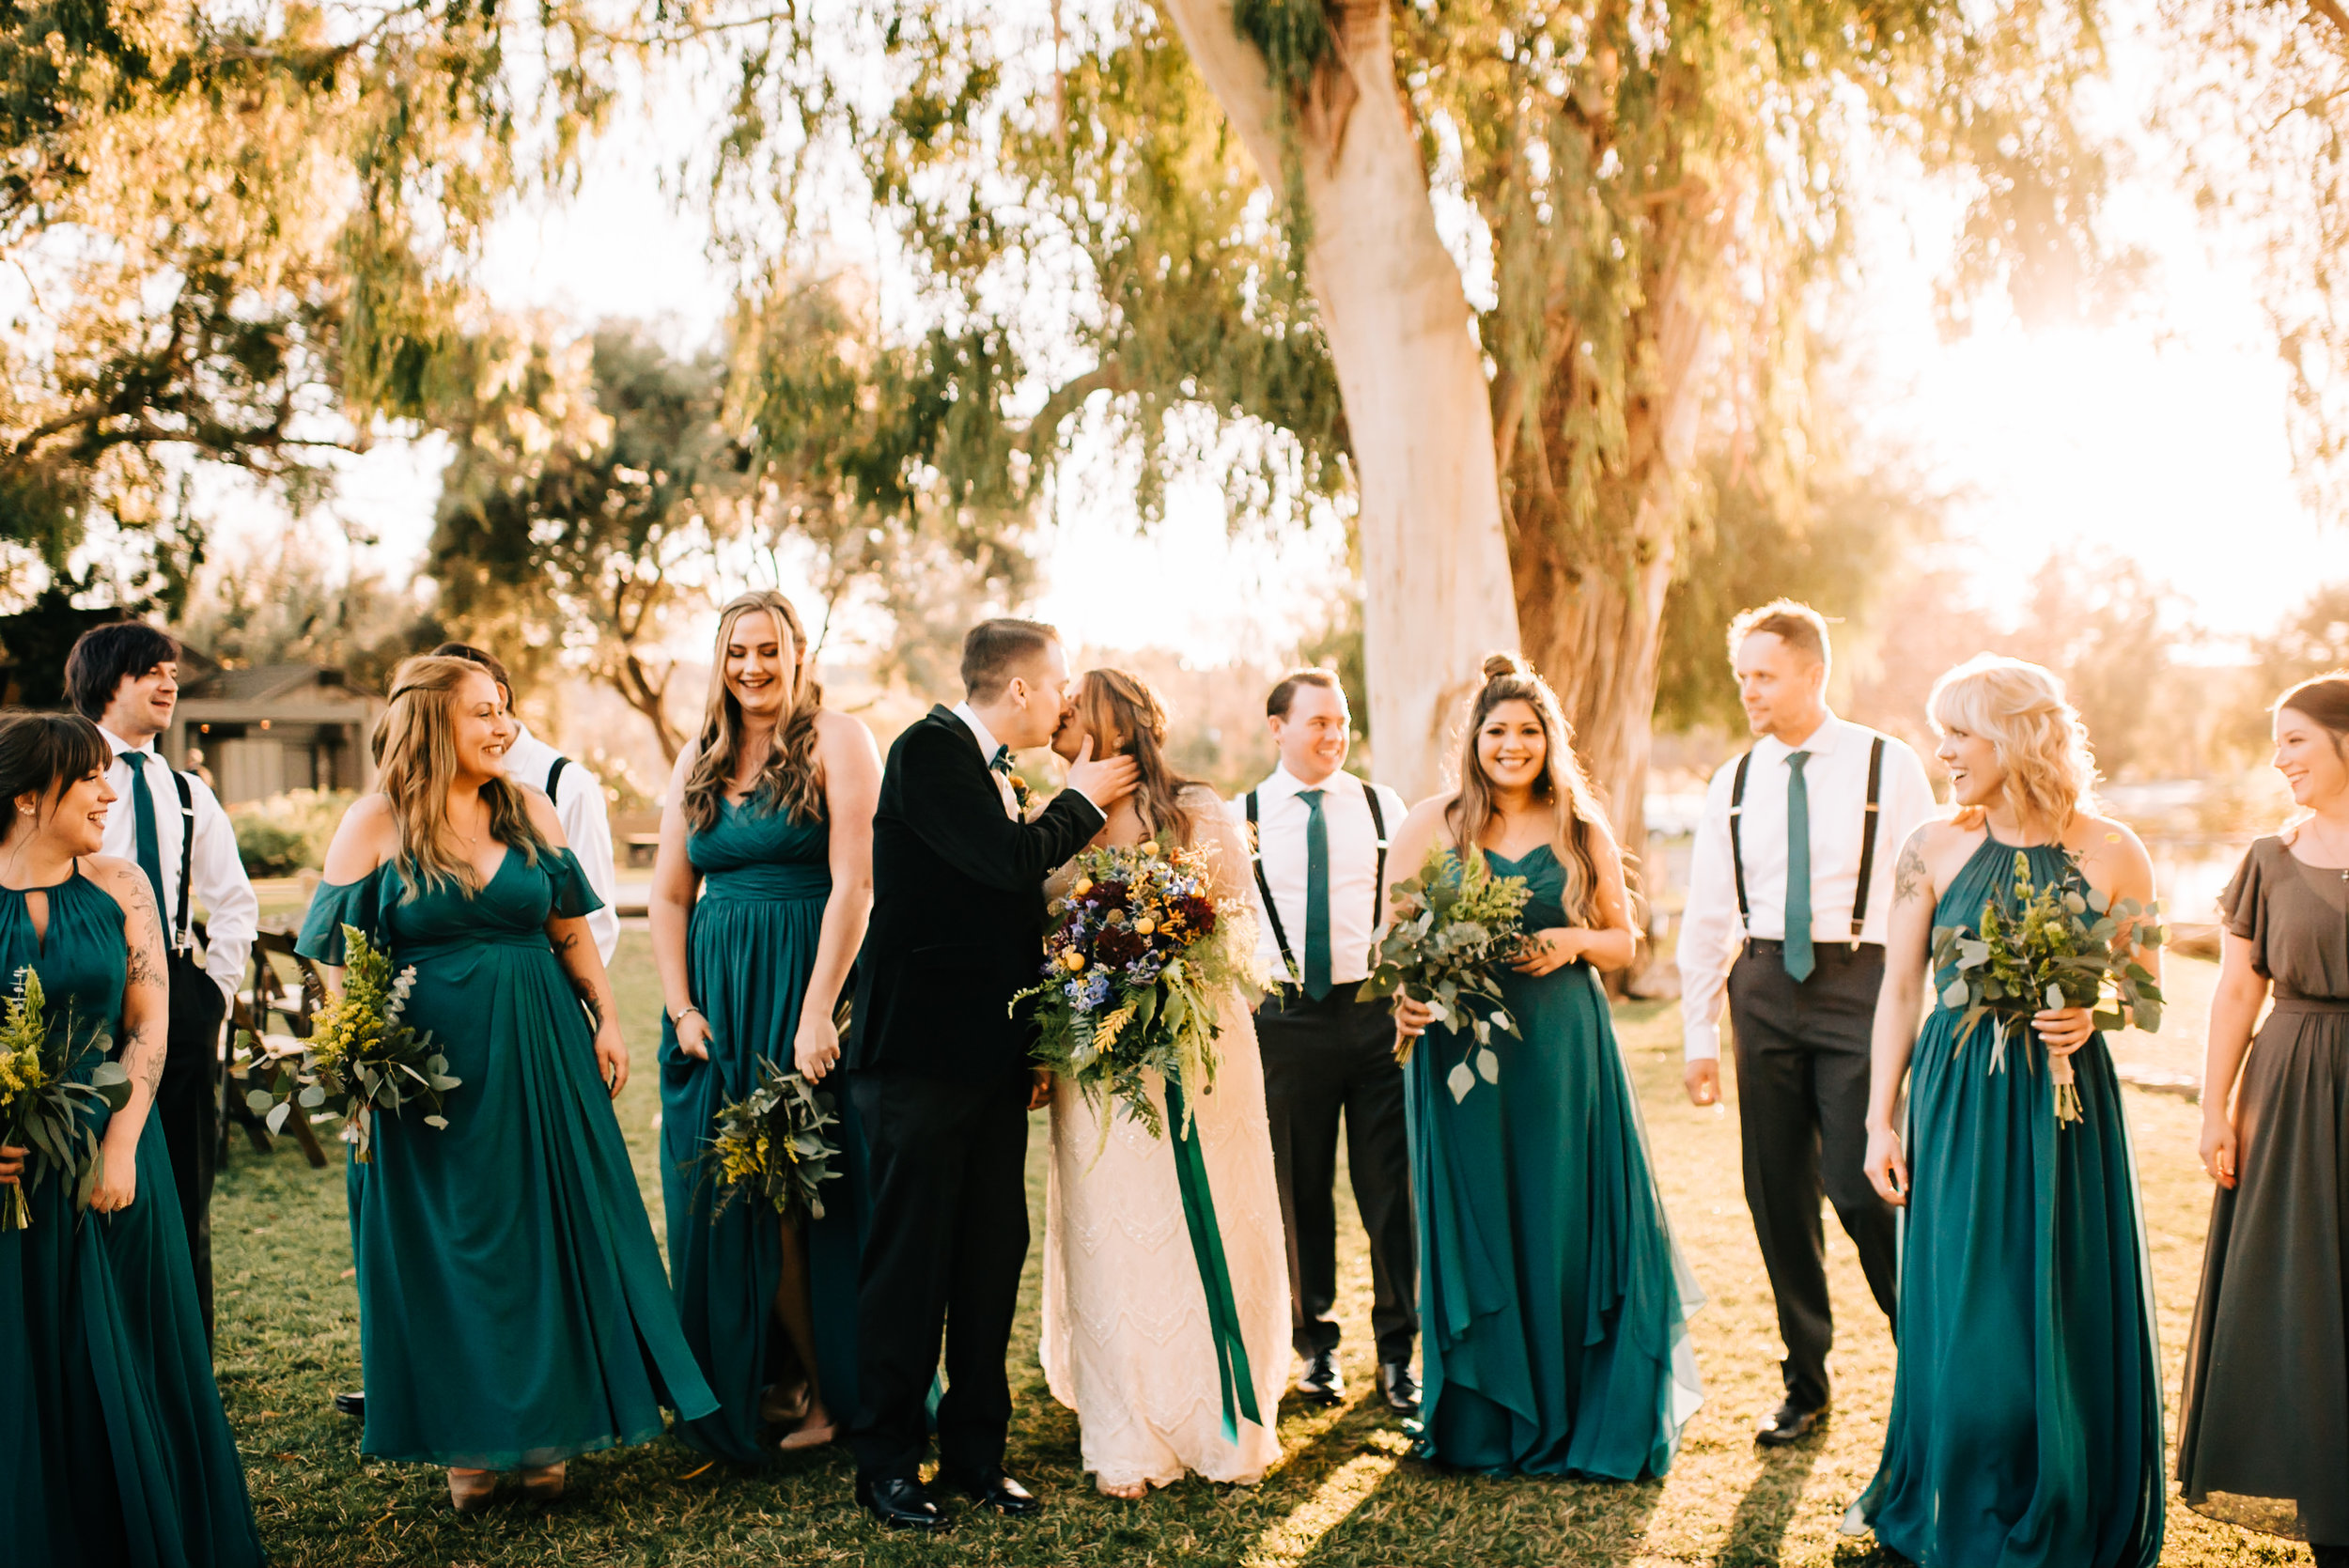 bay area nontraditional wedding photographer southern california boho wedding love light magic san francisco oakland northern california-732.jpg